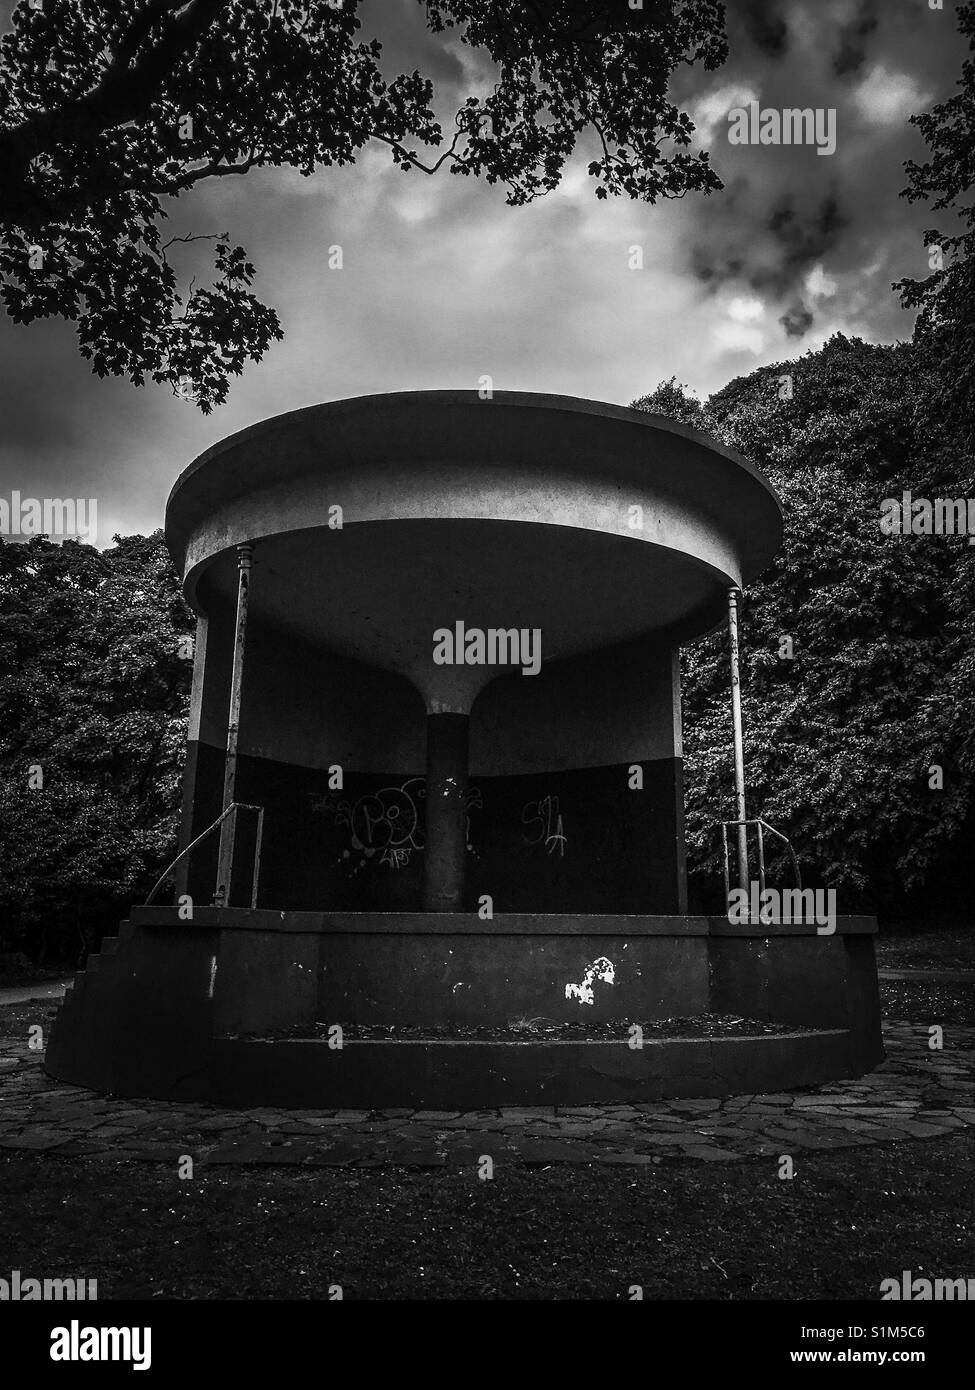 Moody black and white image of bandstand in castle park Whitehaven Cumbria - Stock Image